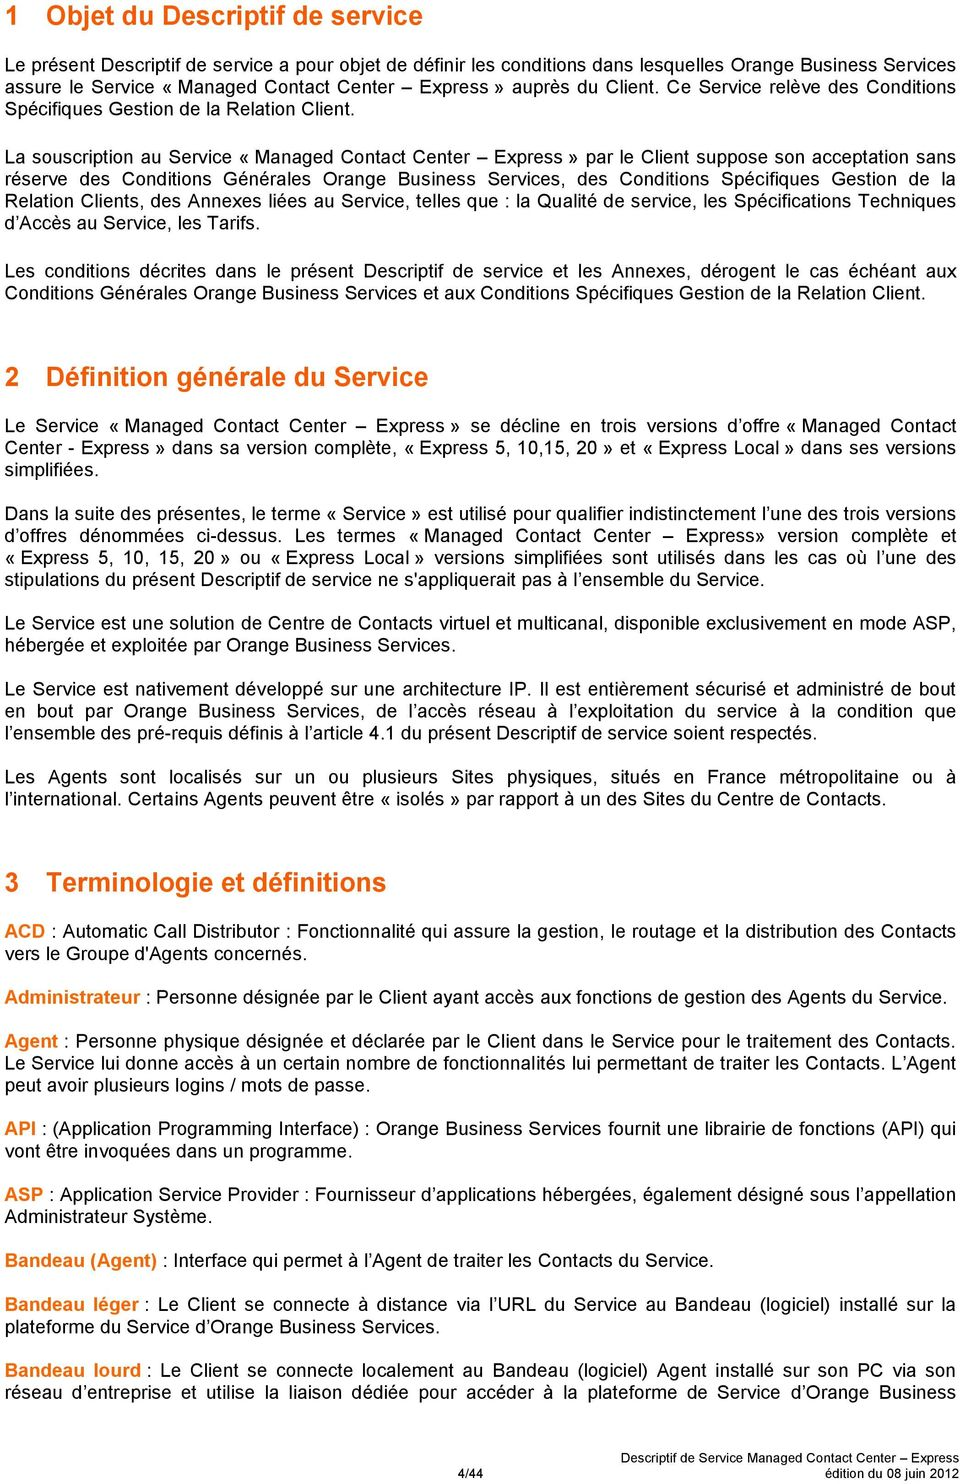 La souscription au Service «Managed Contact Center Express» par le Client suppose son acceptation sans réserve des Conditions Générales Orange Business Services, des Conditions Spécifiques Gestion de